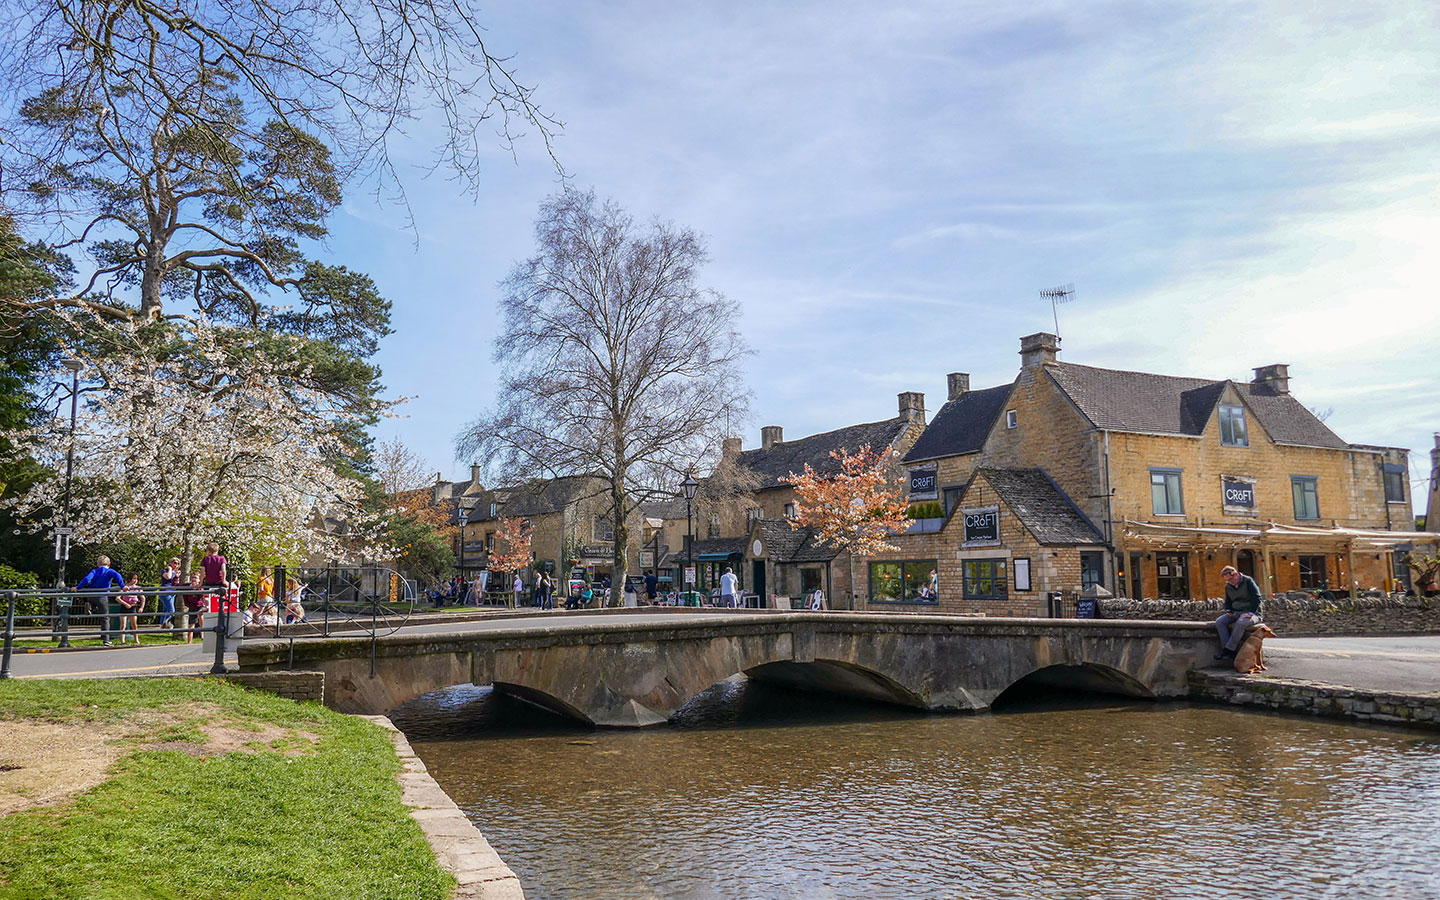 The River Windrush flowing through Bourton-on-the-Water in the Cotswolds